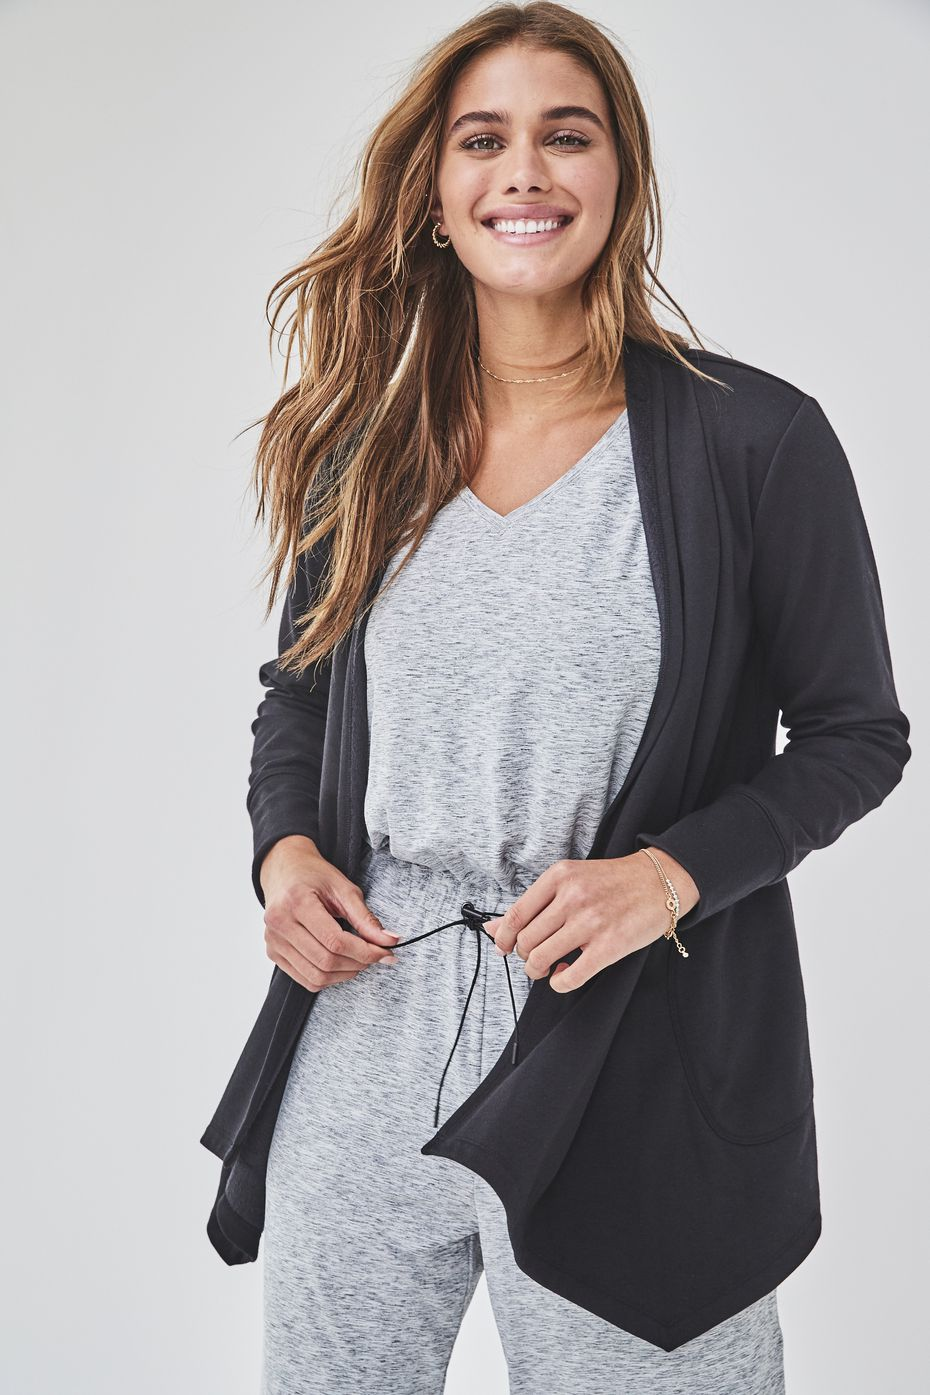 J.C. Penney's new Stylus women's apparel brand is made from woven knits and lightweight stretch fabrics.